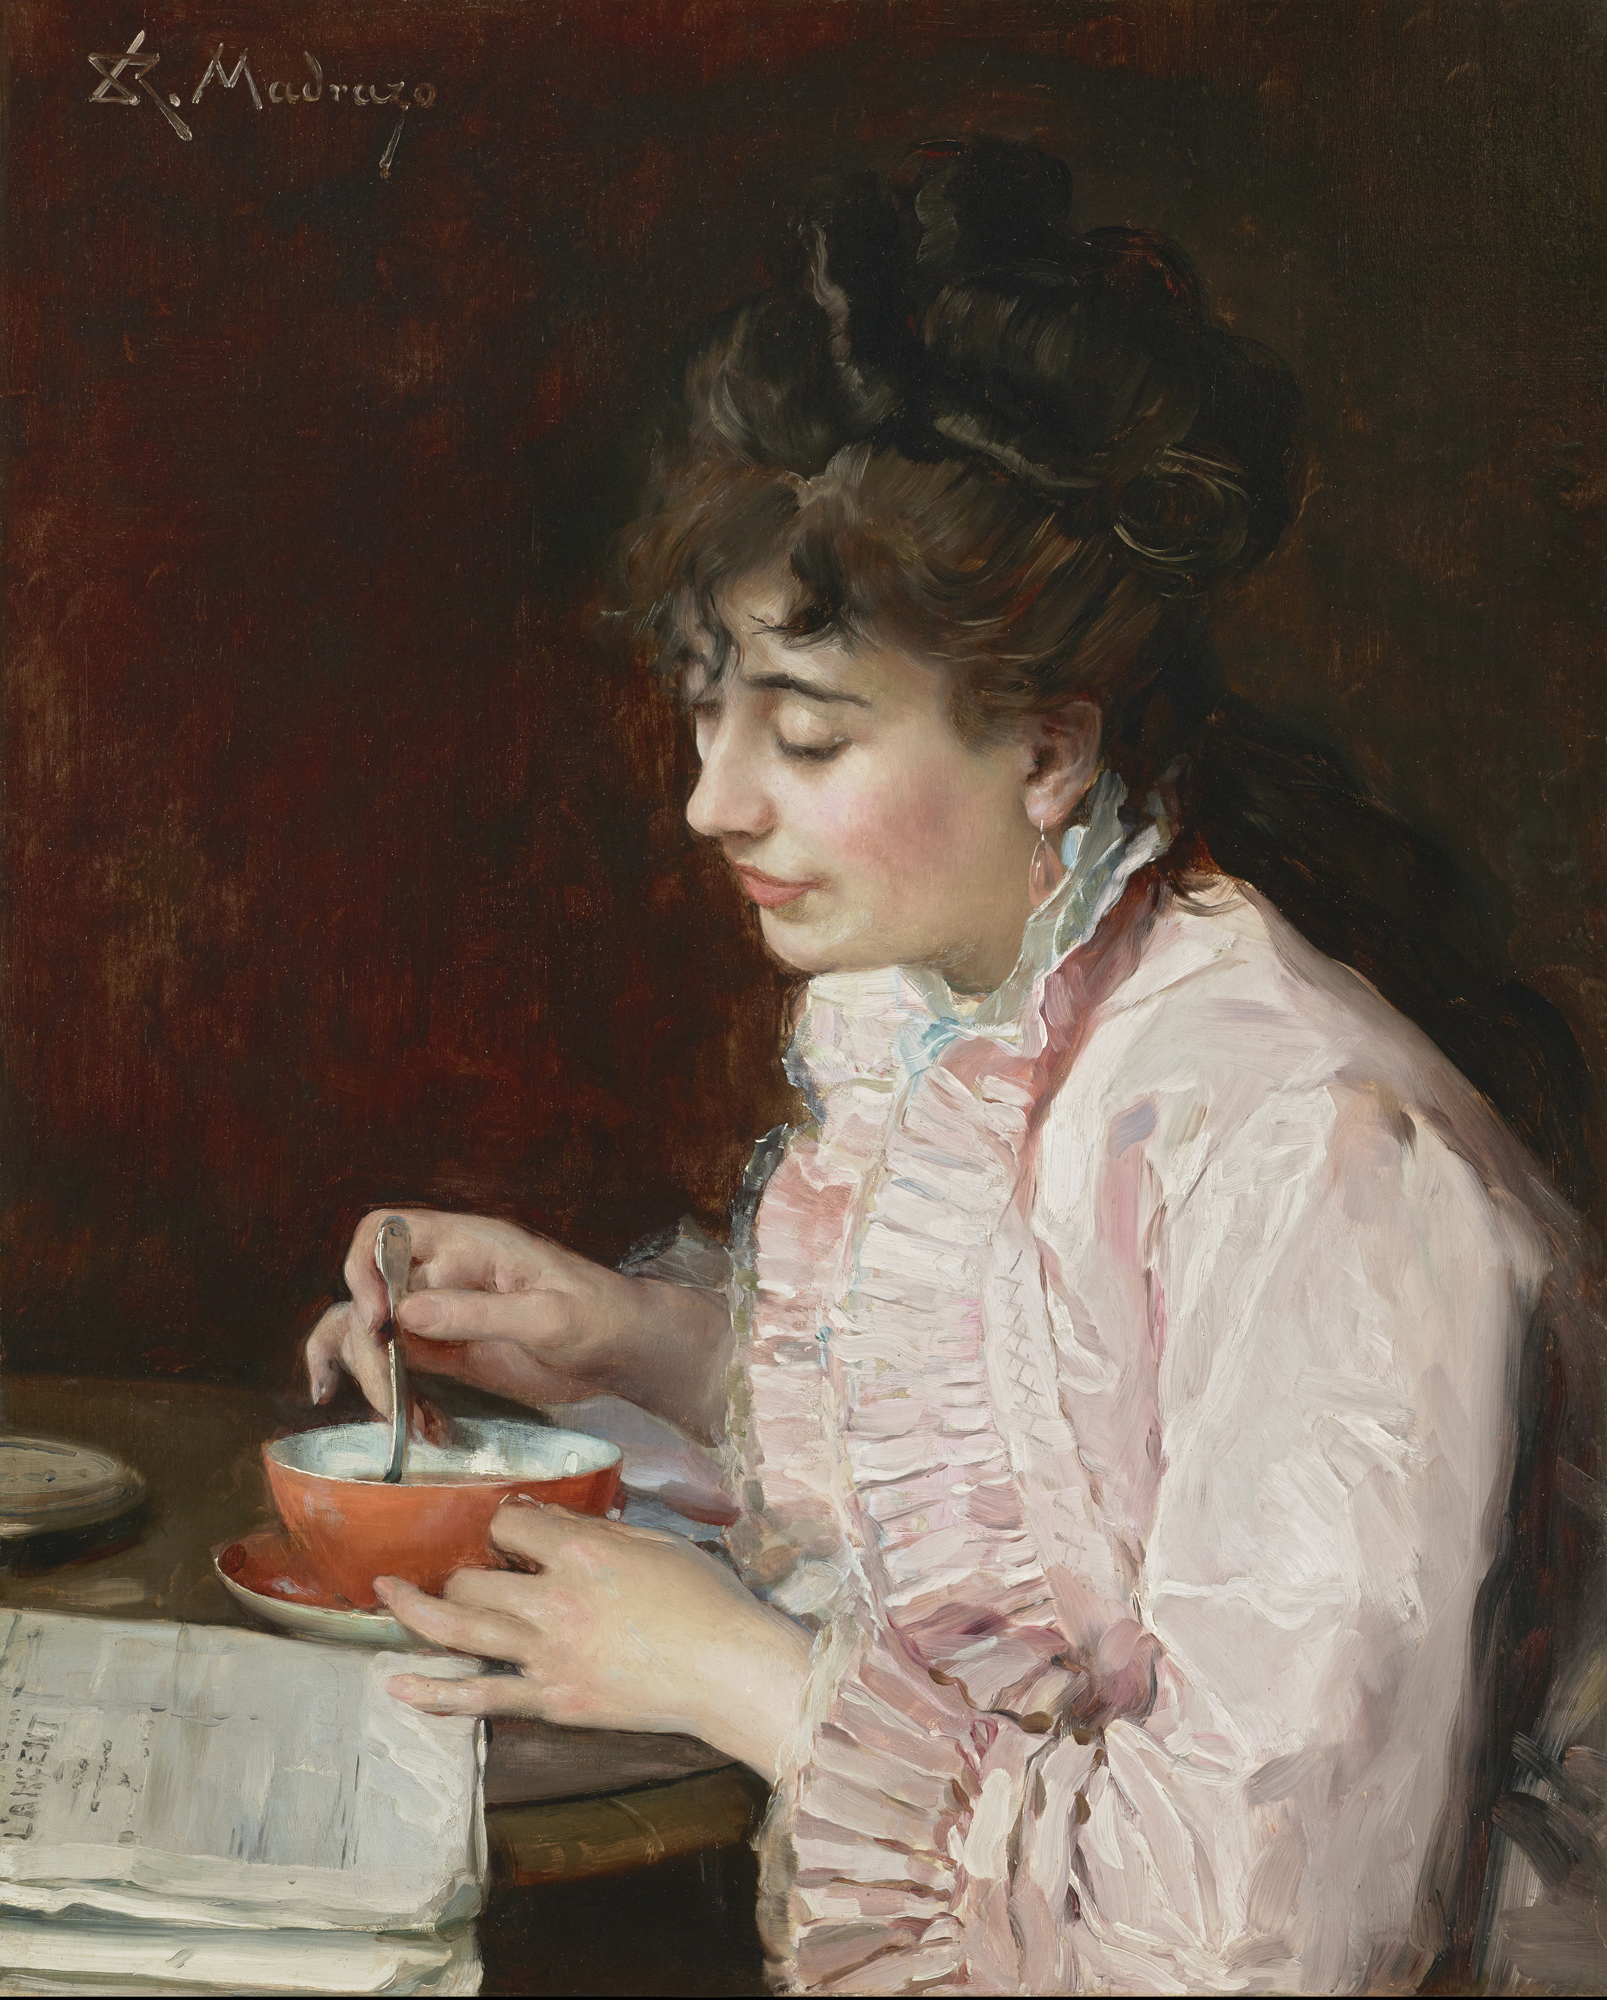 Raimundo de Madrazo y Garreta (Spanish, 1841-1920), Portrait of a Lady, 1890-91. Oil on cradled panel. Meadows Museum, SMU, Dallas. Museum Purchase thanks to a gift from Mrs. Mildred M. Oppenheimer in memory of Dean Carole Brandt, MM.2014.02. Photo by Michael Bodycomb